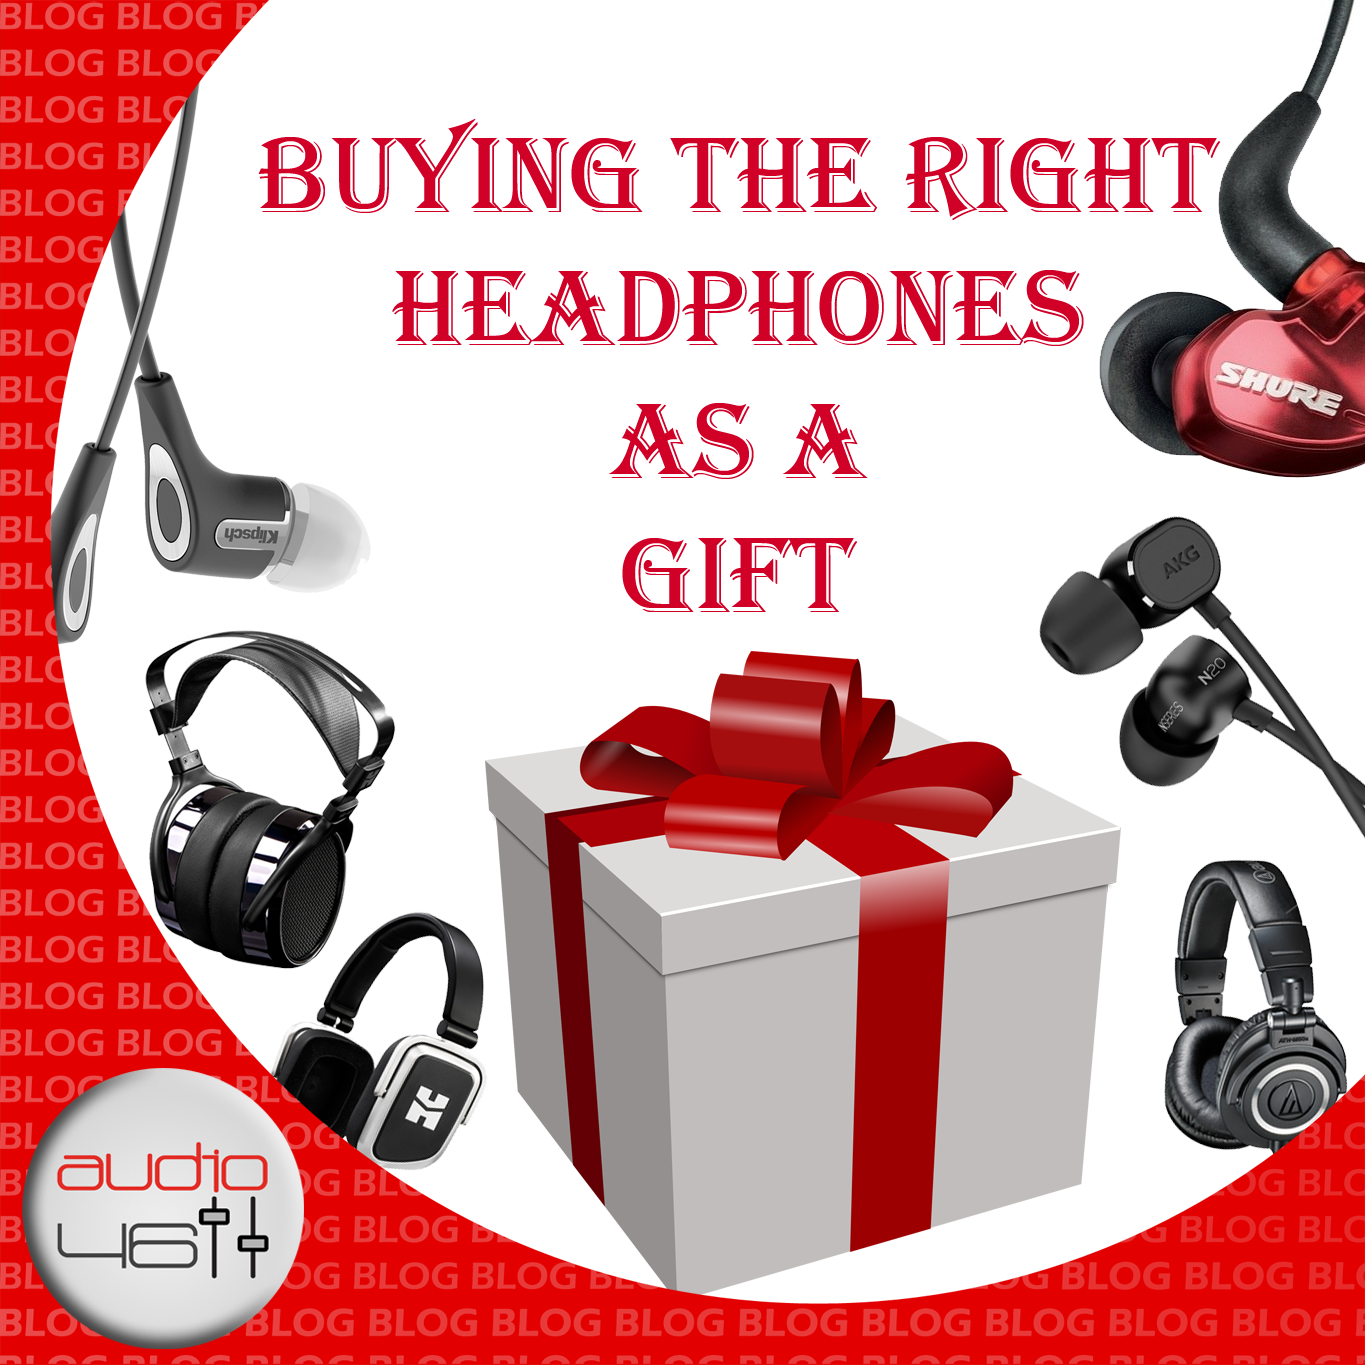 Buying The Right Headphones As A Gift